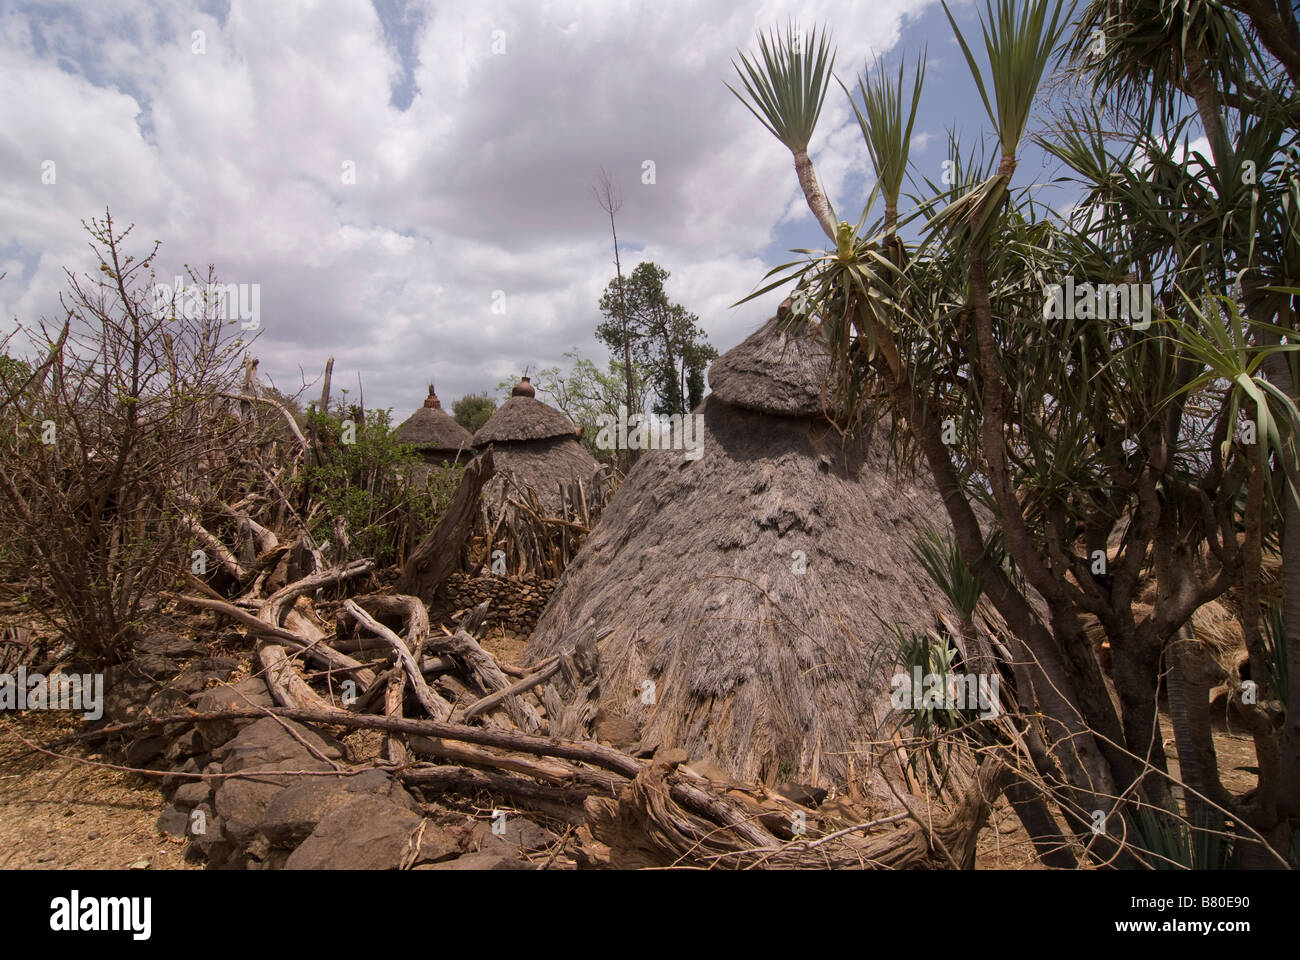 Gezahegne Woldu s Compund holy kraal from the Konso tribe Omovalley Ethiopia Africa - Stock Image